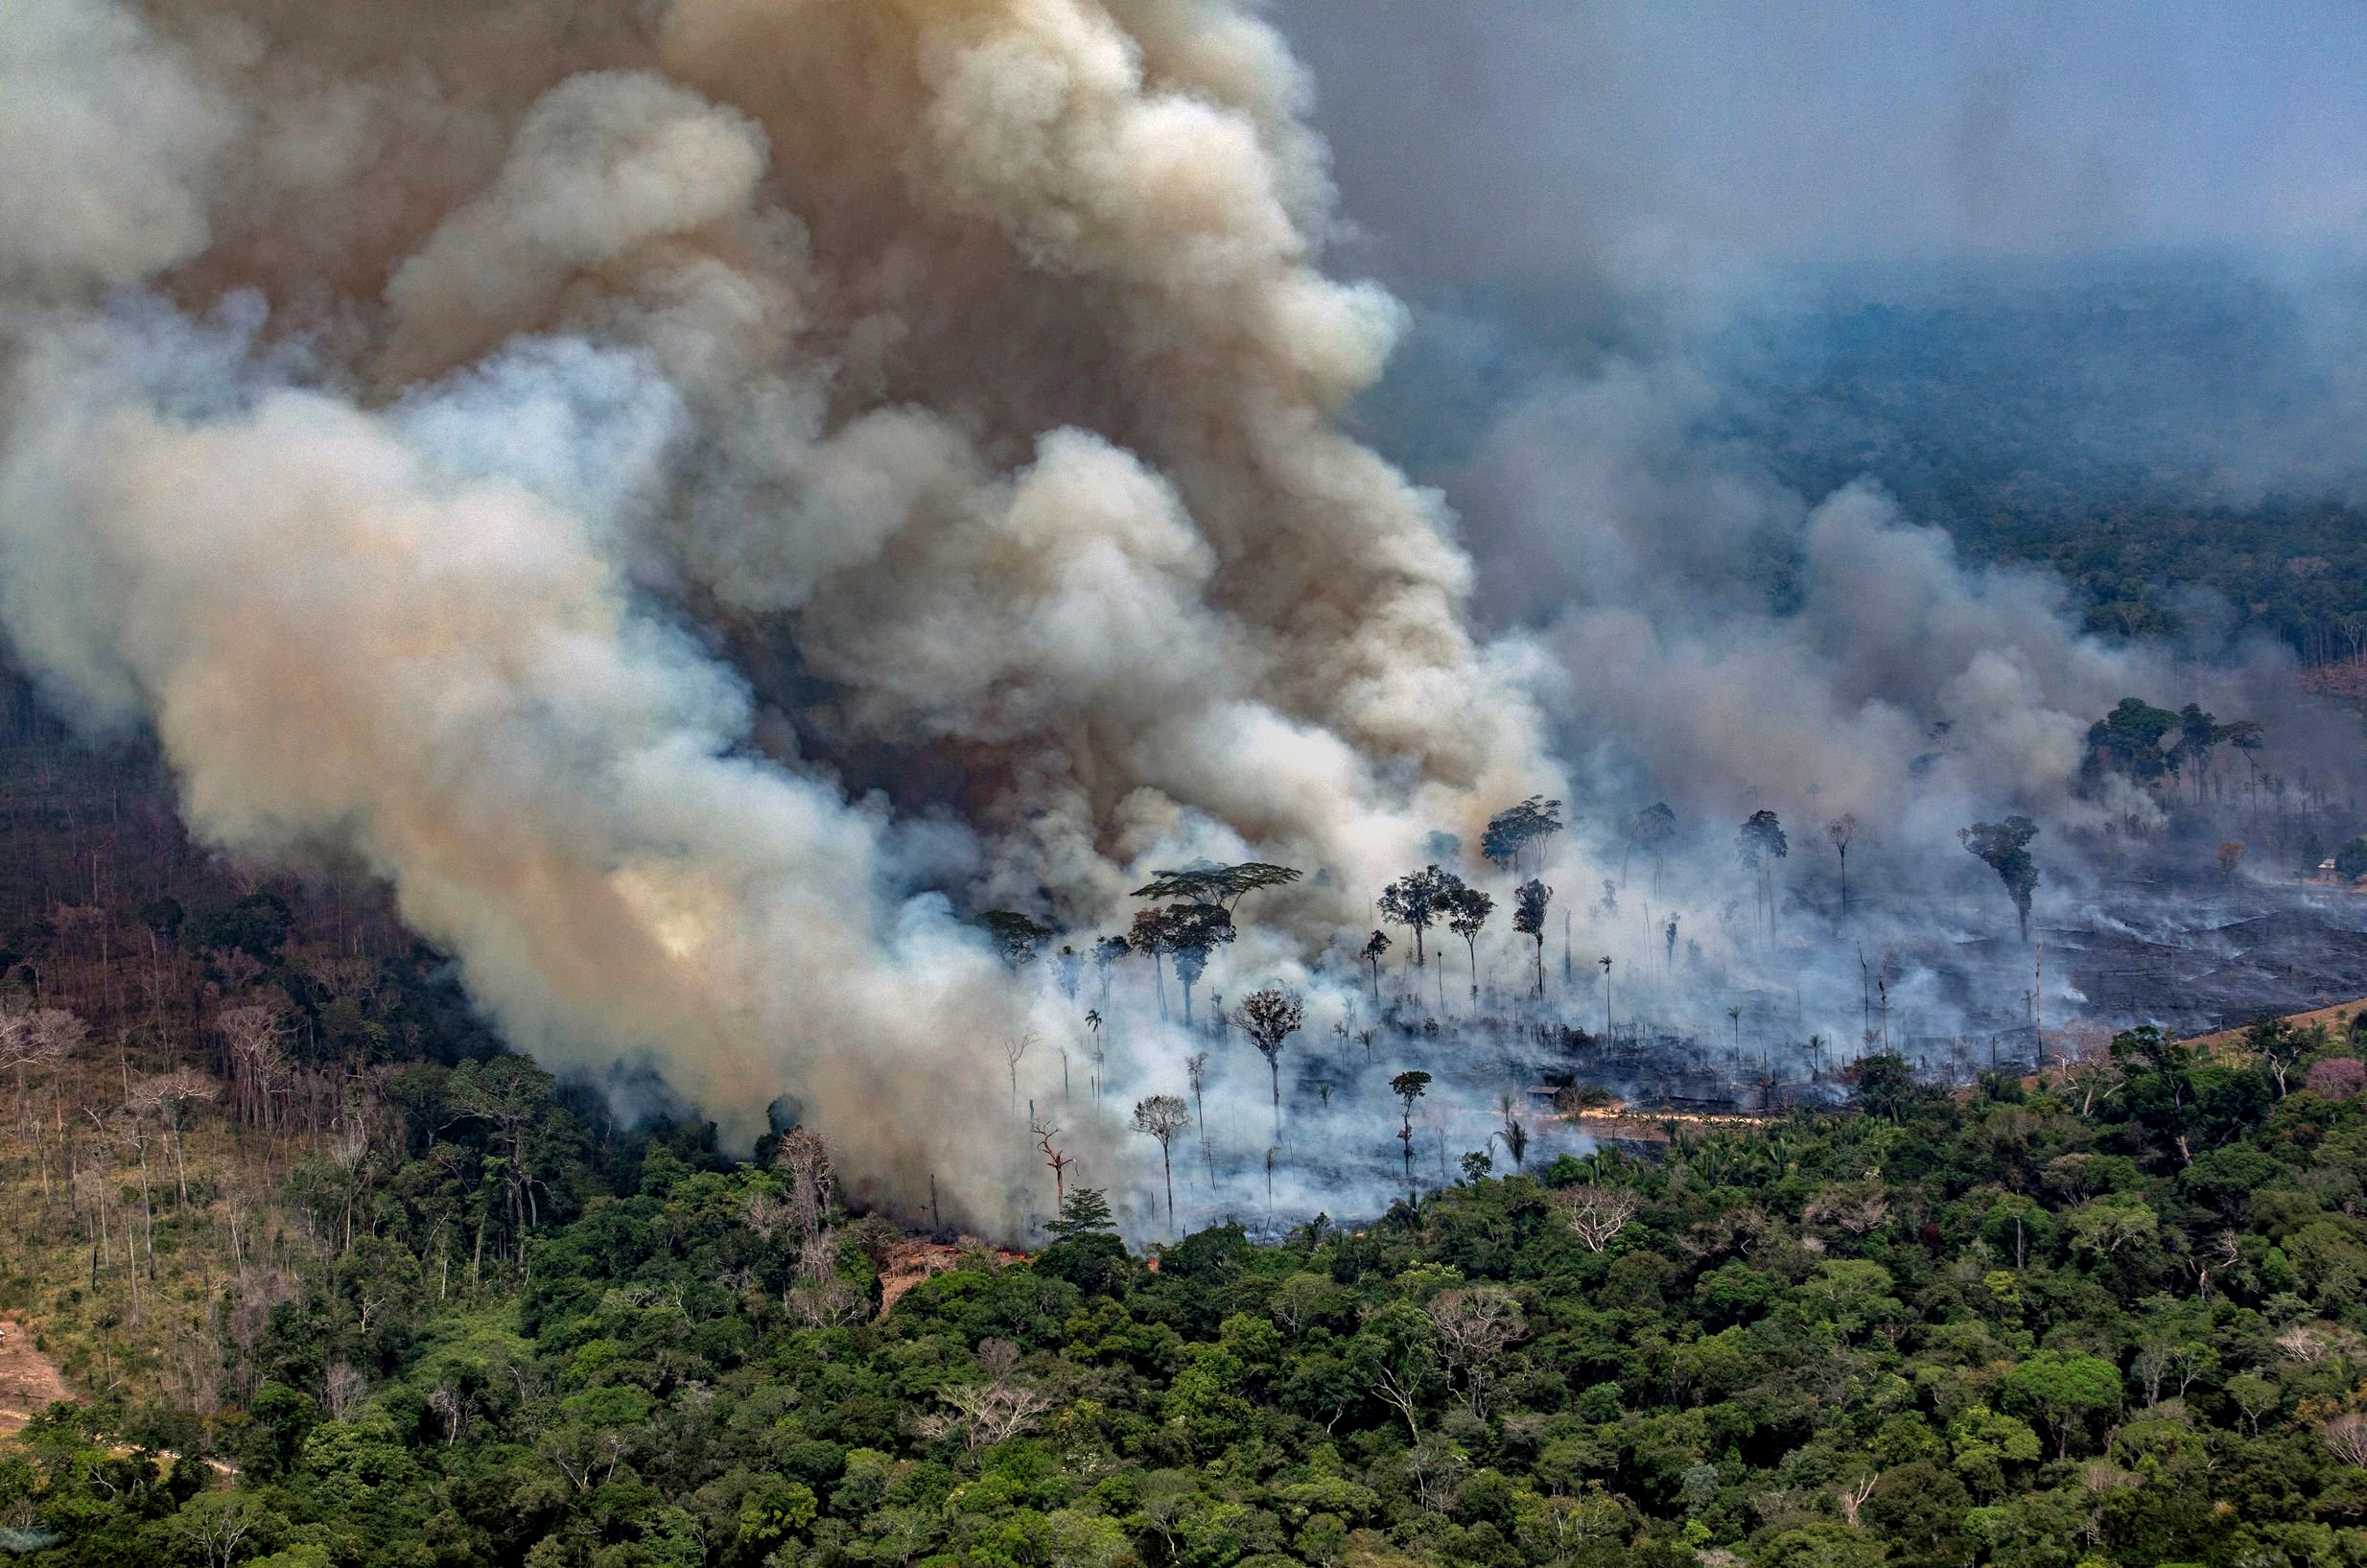 Why is the Amazon rainforest important?